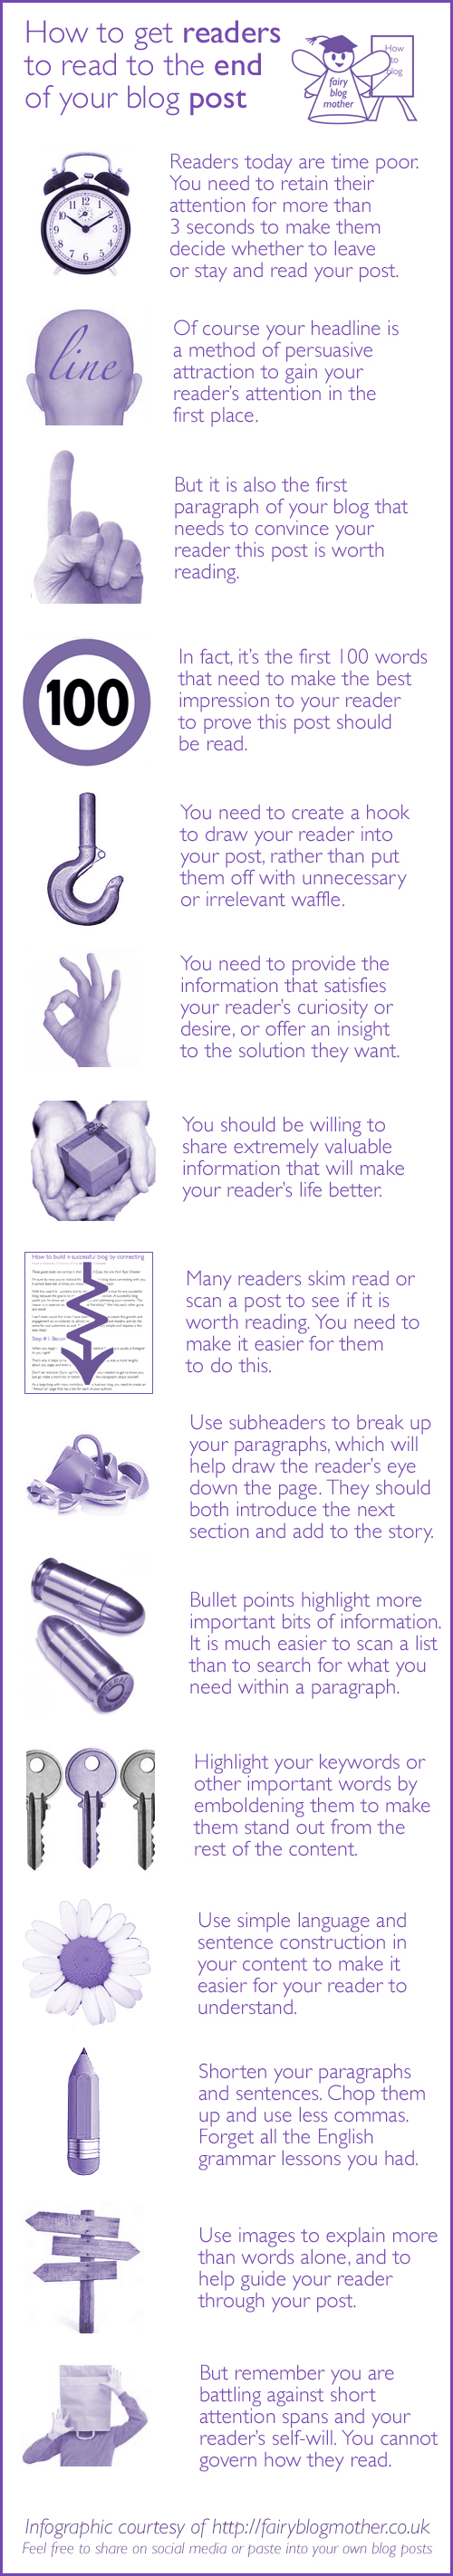 How to get more readers reading your blog posts